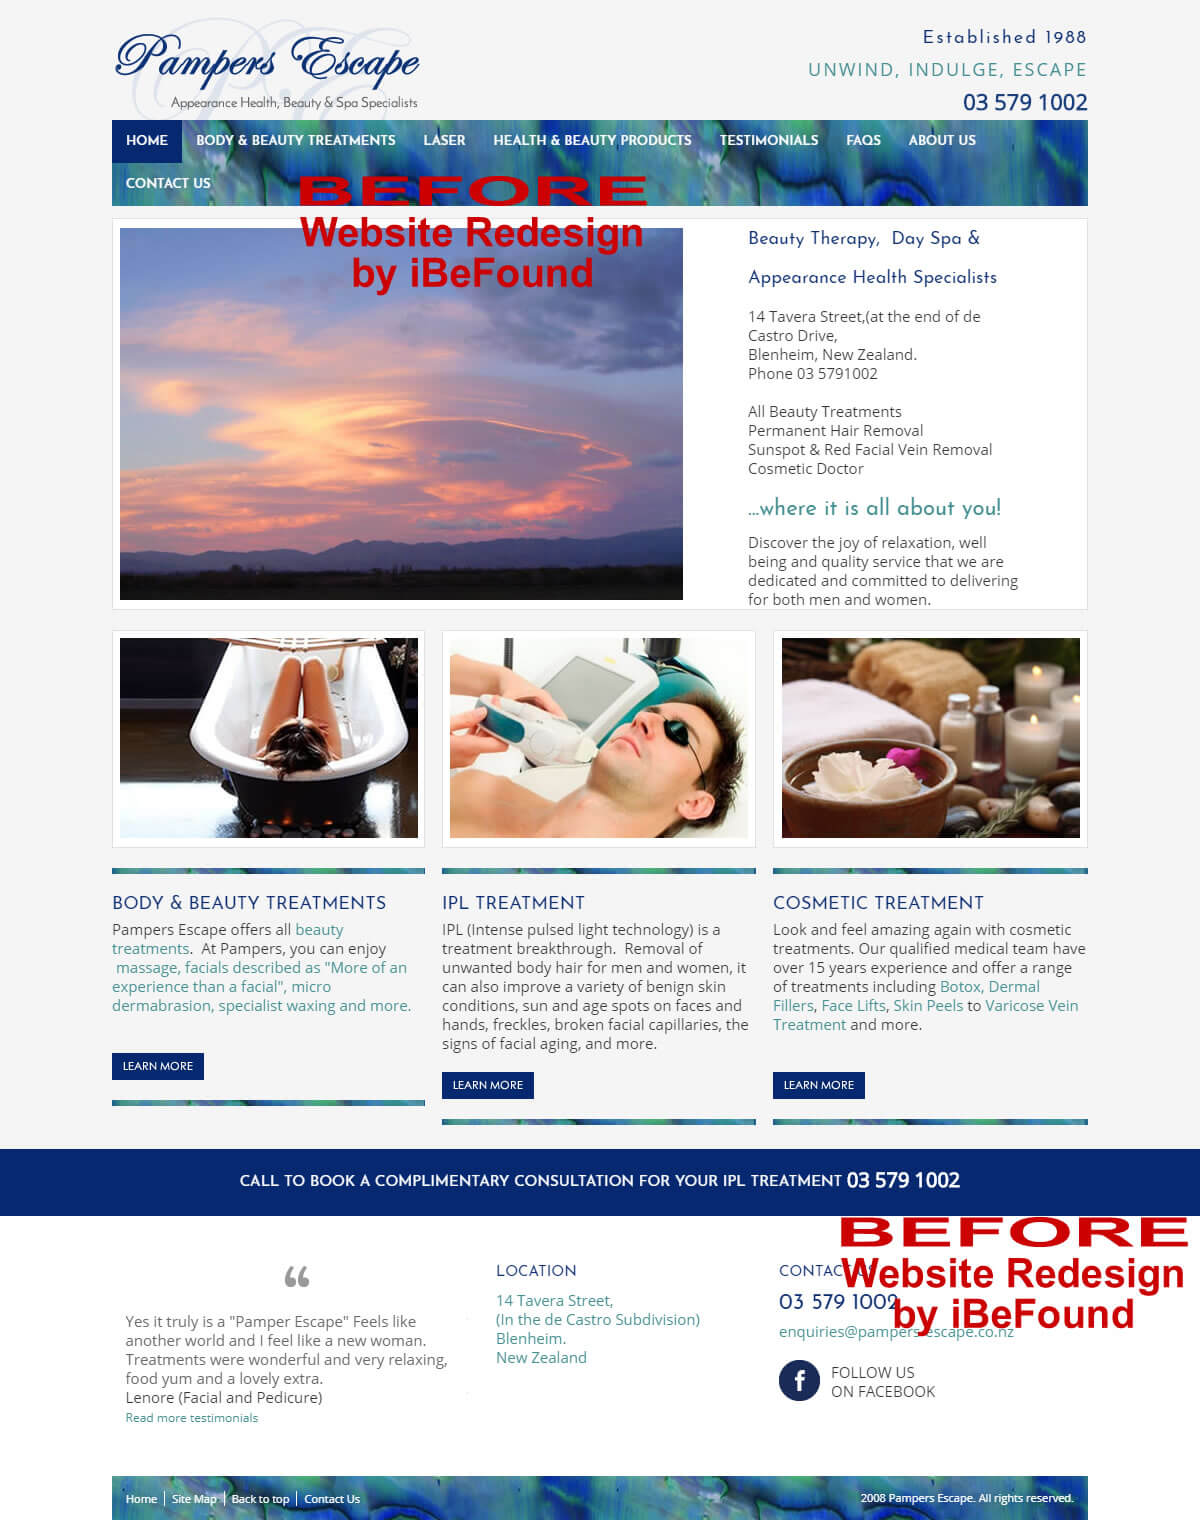 Homepage Of Pampers Escape Before Website Redesign By IBeFound Digital Marketing